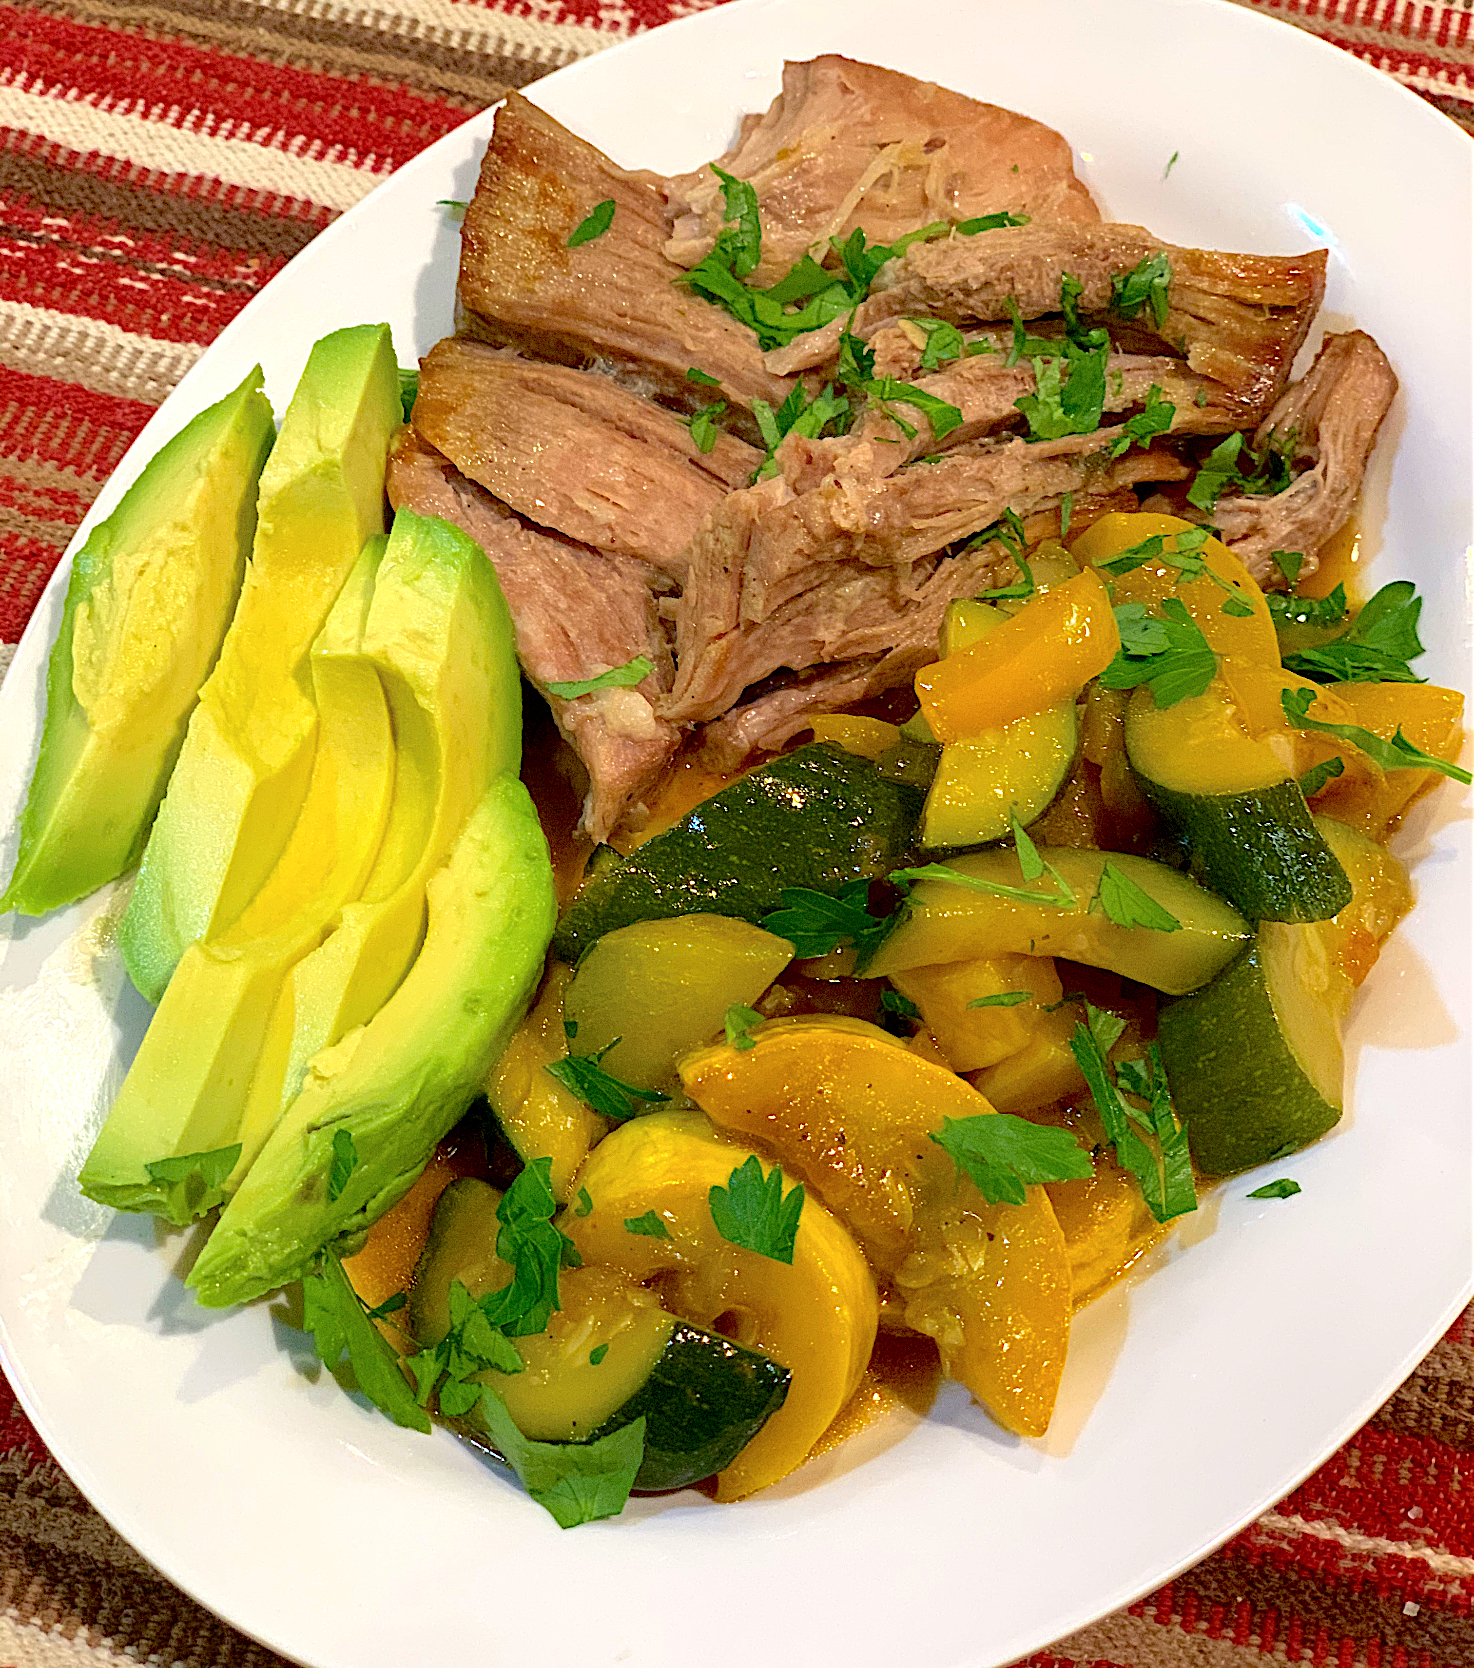 Keto Carnitas and Sauteed Veggies. Sliced avocado 🥑 on the side 😋